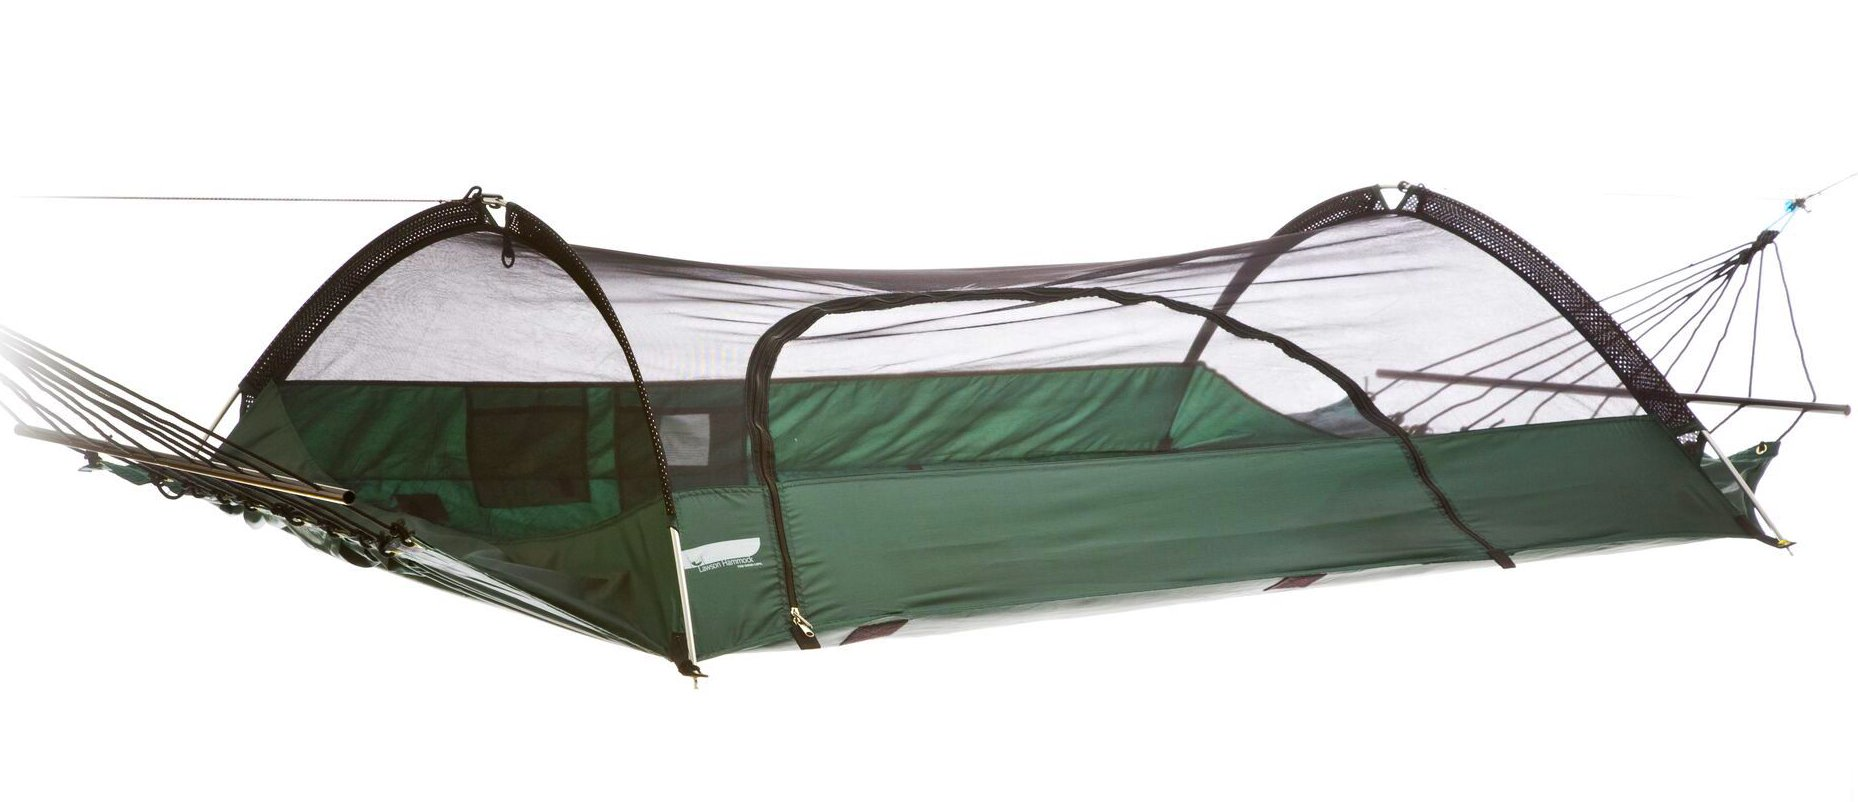 Lawson Hammock Blue Ridge Camping Hammock and Tent by Lawson Hammock